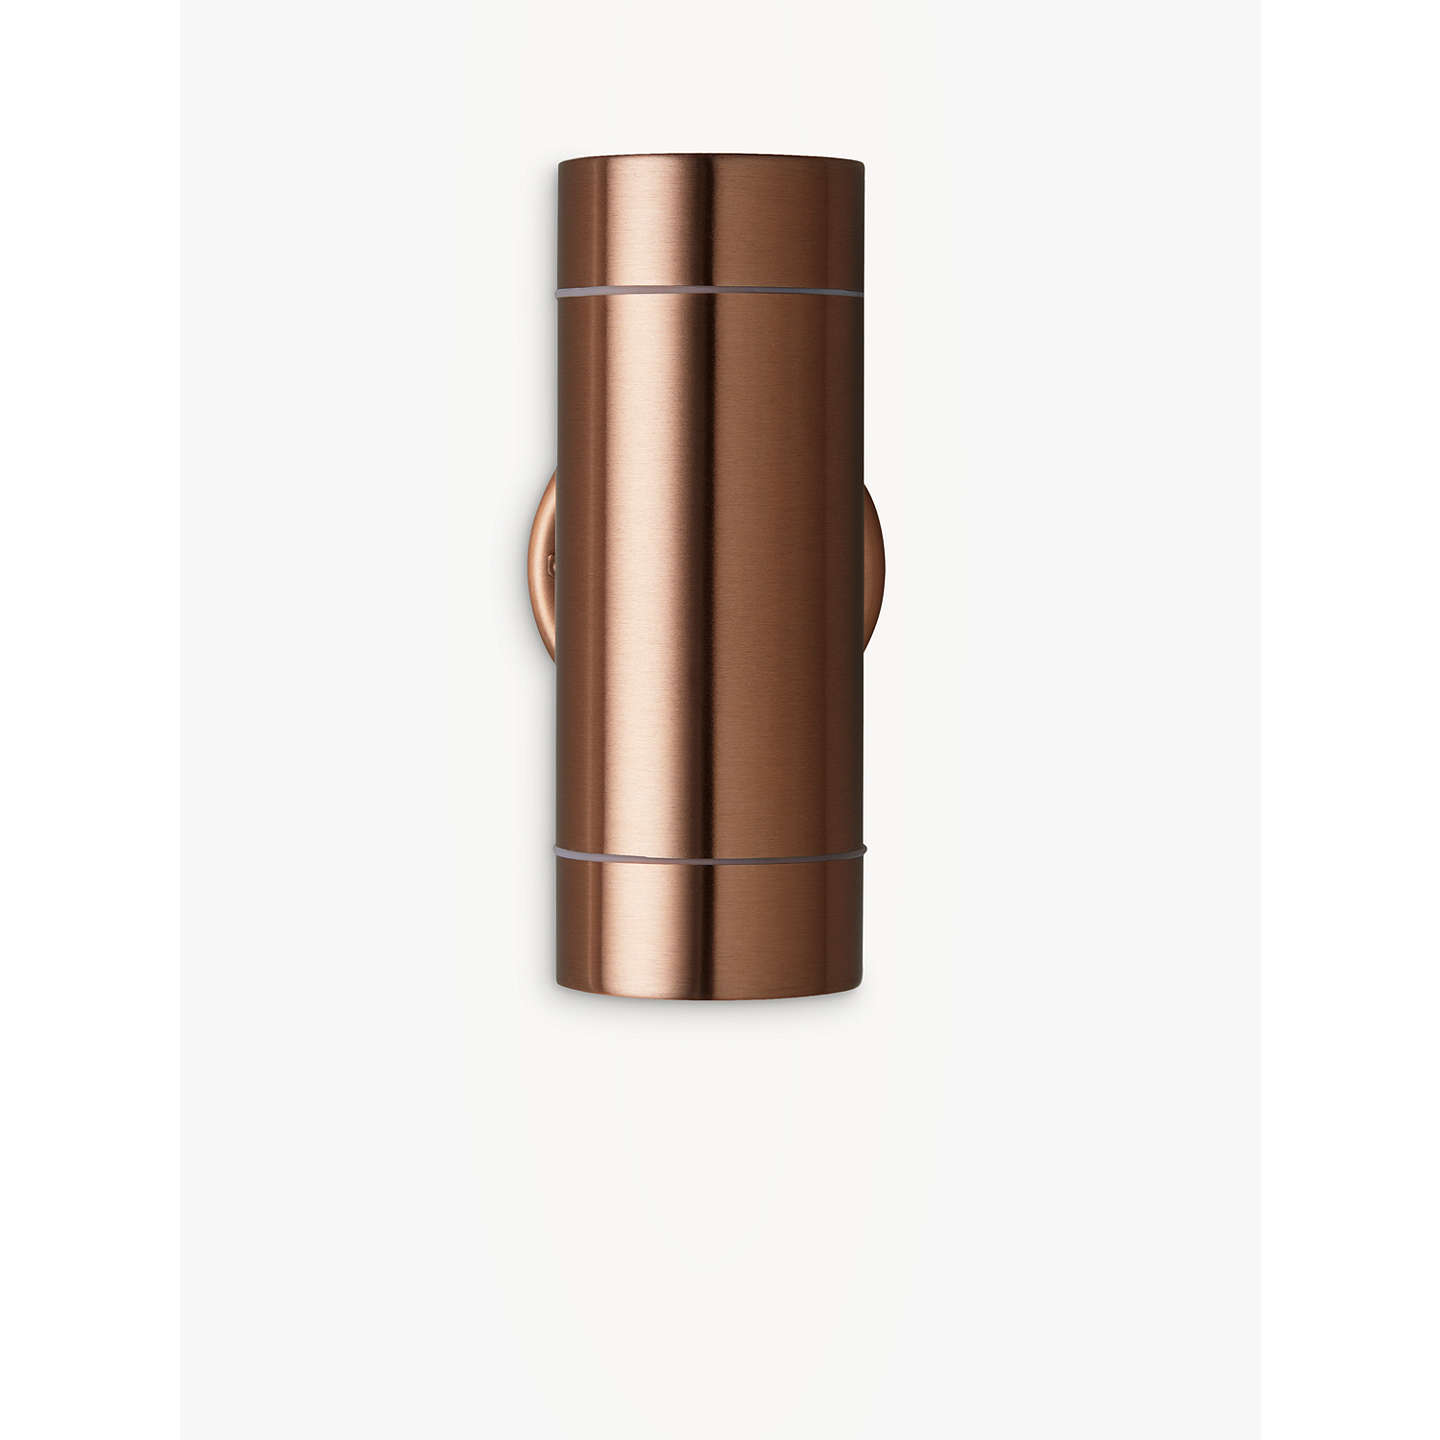 John lewis strom led outdoor wall light at john lewis buyjohn lewis strom led outdoor wall light copper online at johnlewis aloadofball Choice Image